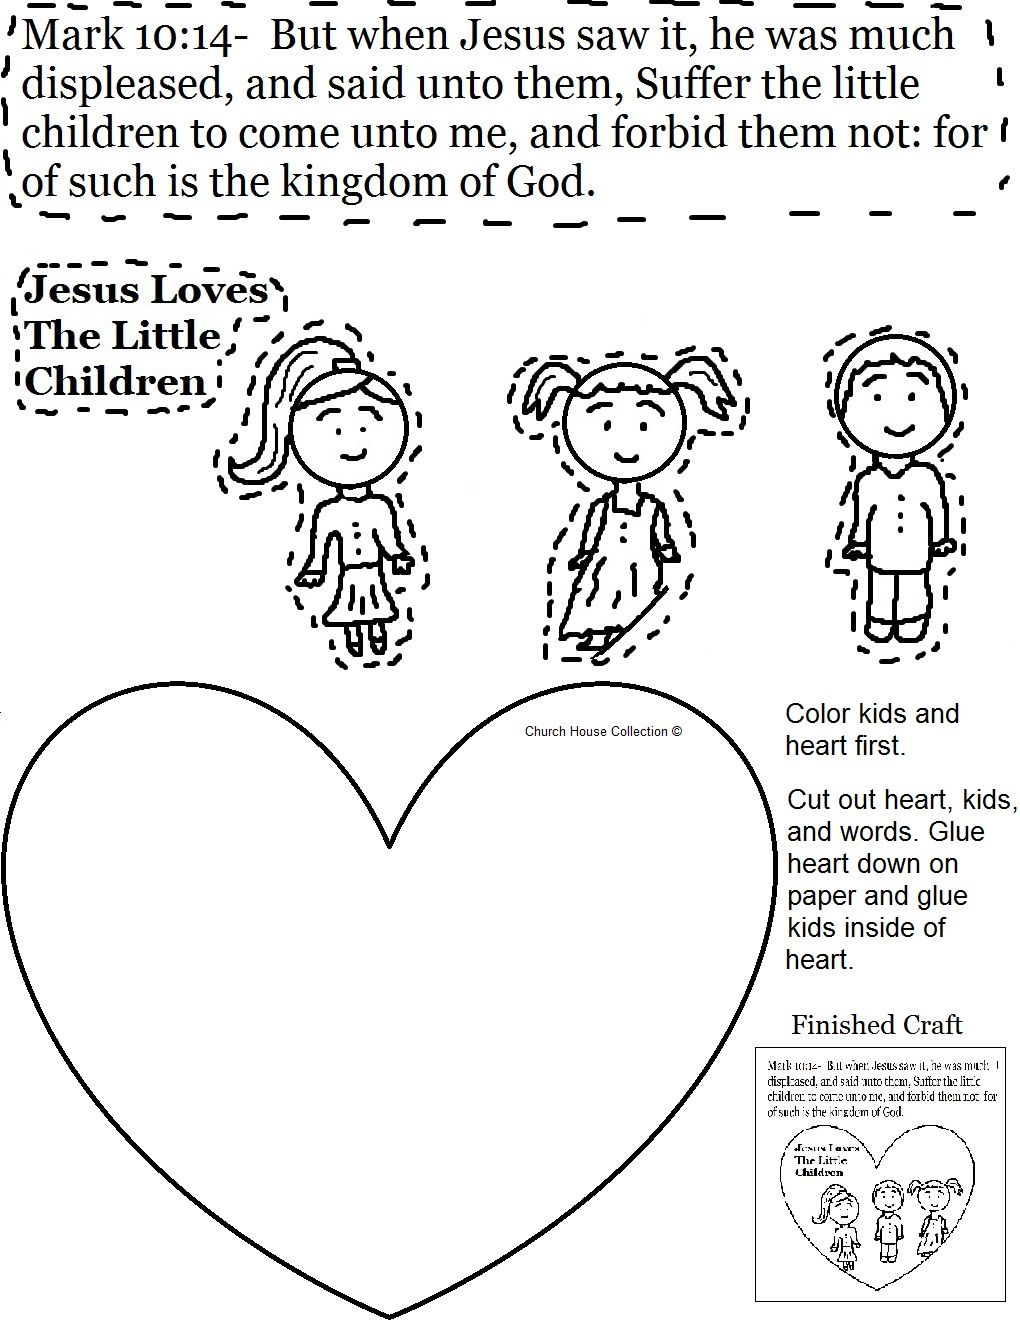 Jesus Loves The Little Children Activity Page Jpg 1 020 1 320